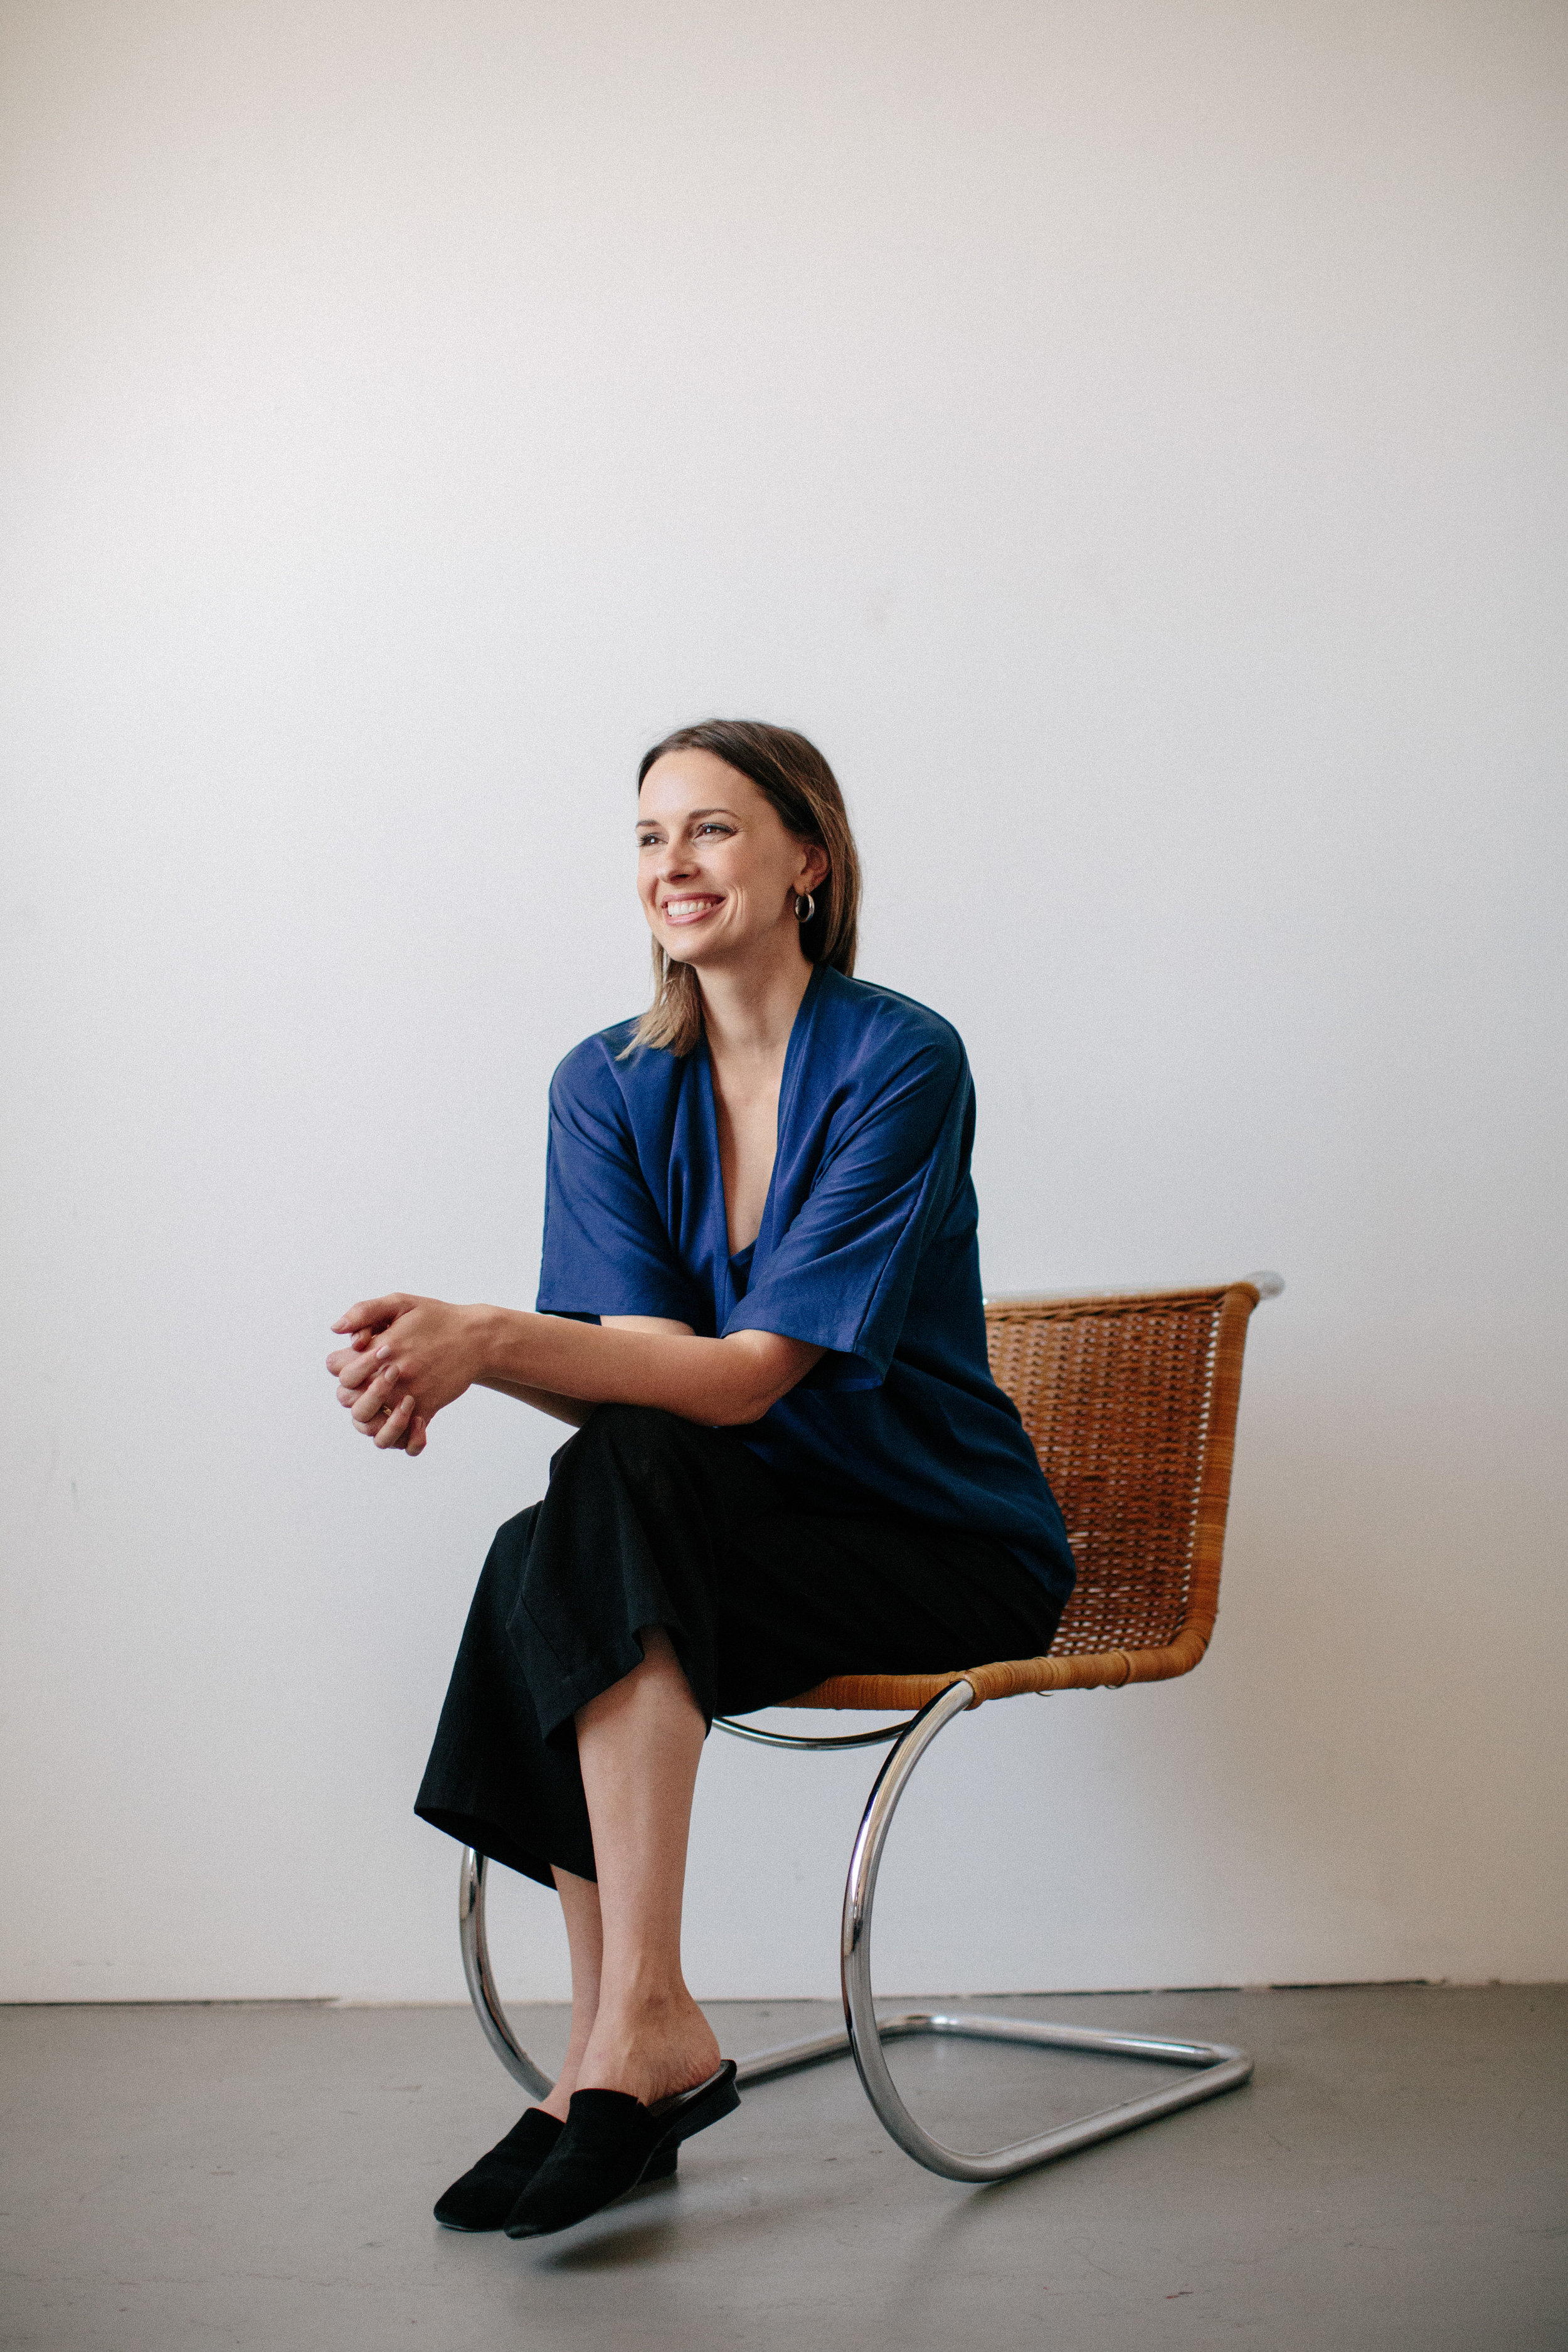 PRIMARY Founder Jessica Olsen - I've always had a knack for problem solving and a pesky—though often rewarding—penchant for digging in deep. My love for developing ideas, meticulously researching, and becoming intimately familiar with the unknown is what drives me every single day. I geek out over each step of the process and love sharing what I find along the way. I also have a strong desire to nurture others and help people heal. The inspiration for PRIMARY comes from these great loves. It's a passion project in its truest sense, and I'm over the moon to bring to you the fruits of my journey.- Jessica